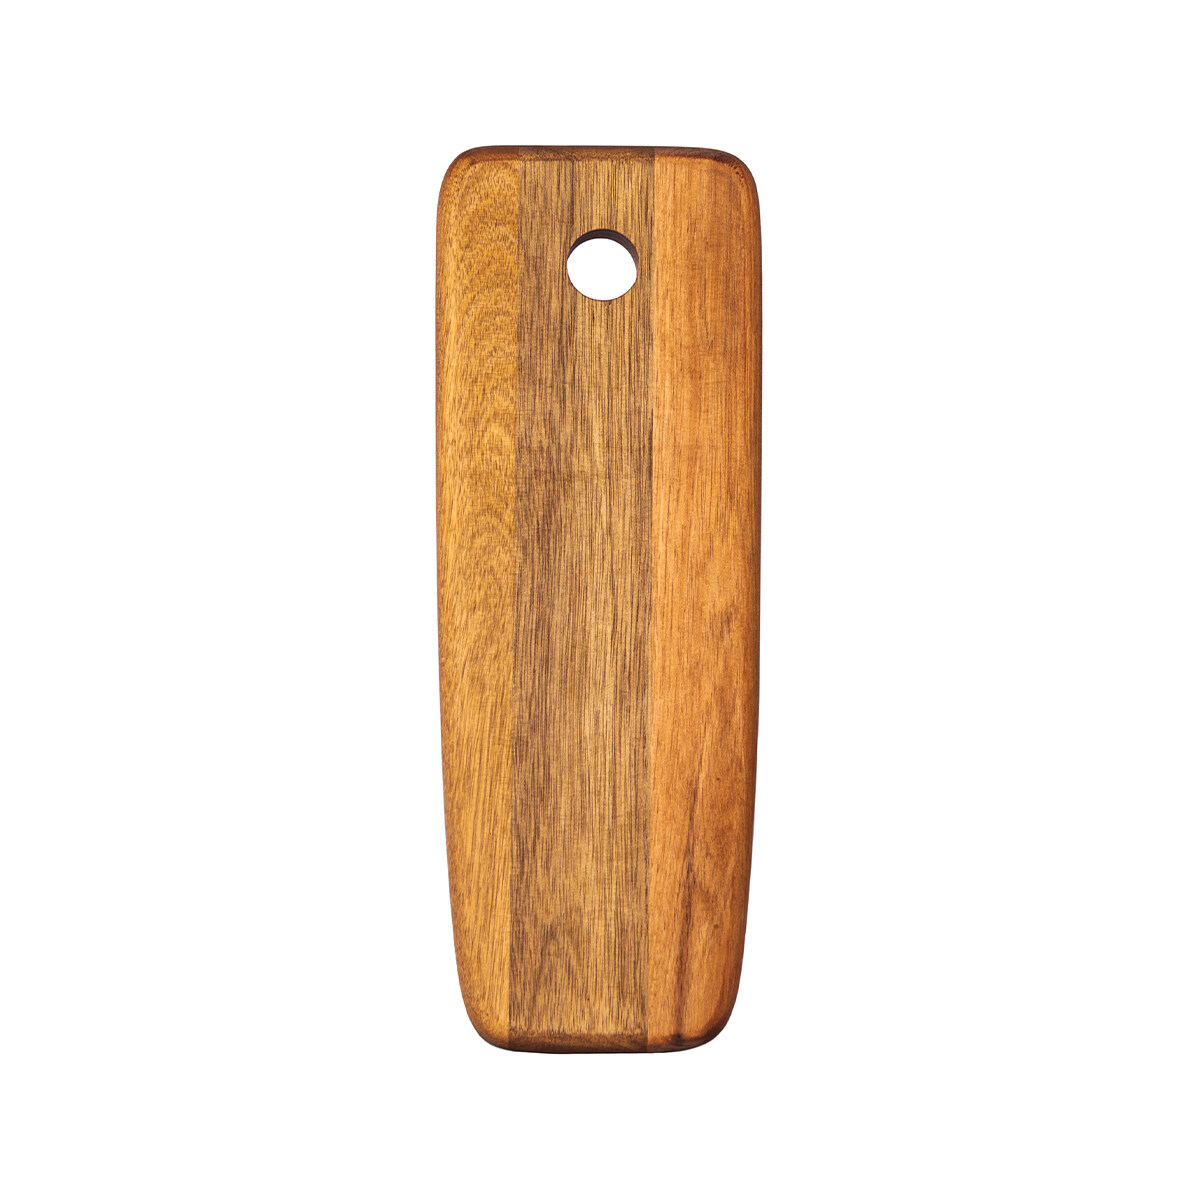 AIDEAS Cutting Board- UKUSNO serving / chopping / wood / natural / platter / plate / acacia / dessert / coffee / dinner